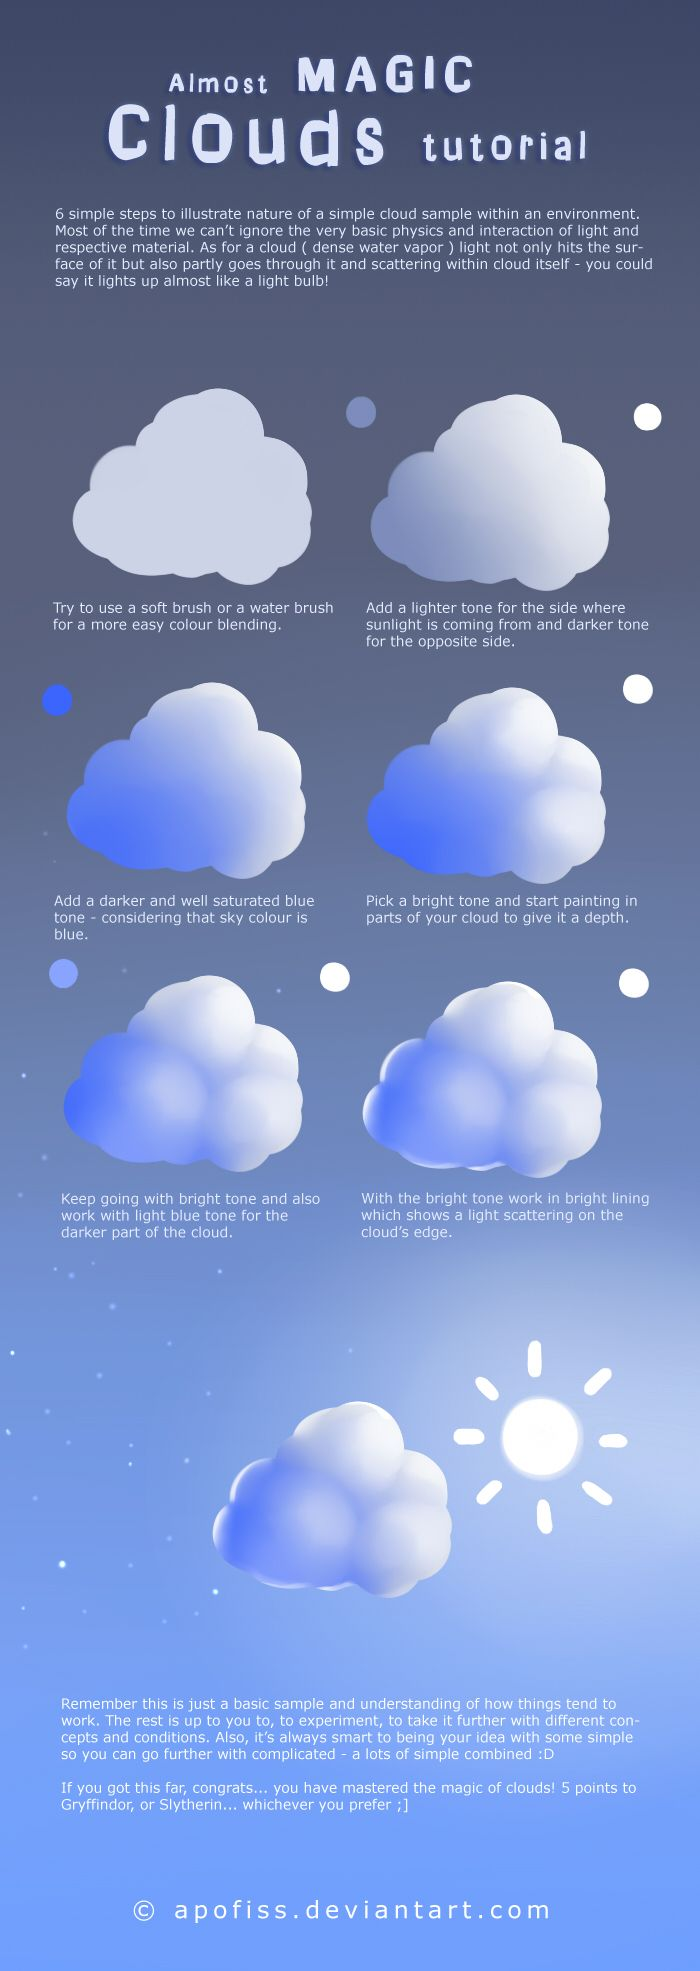 Almost Magic Clouds Tutorial By Apofiss Deviantart Com On